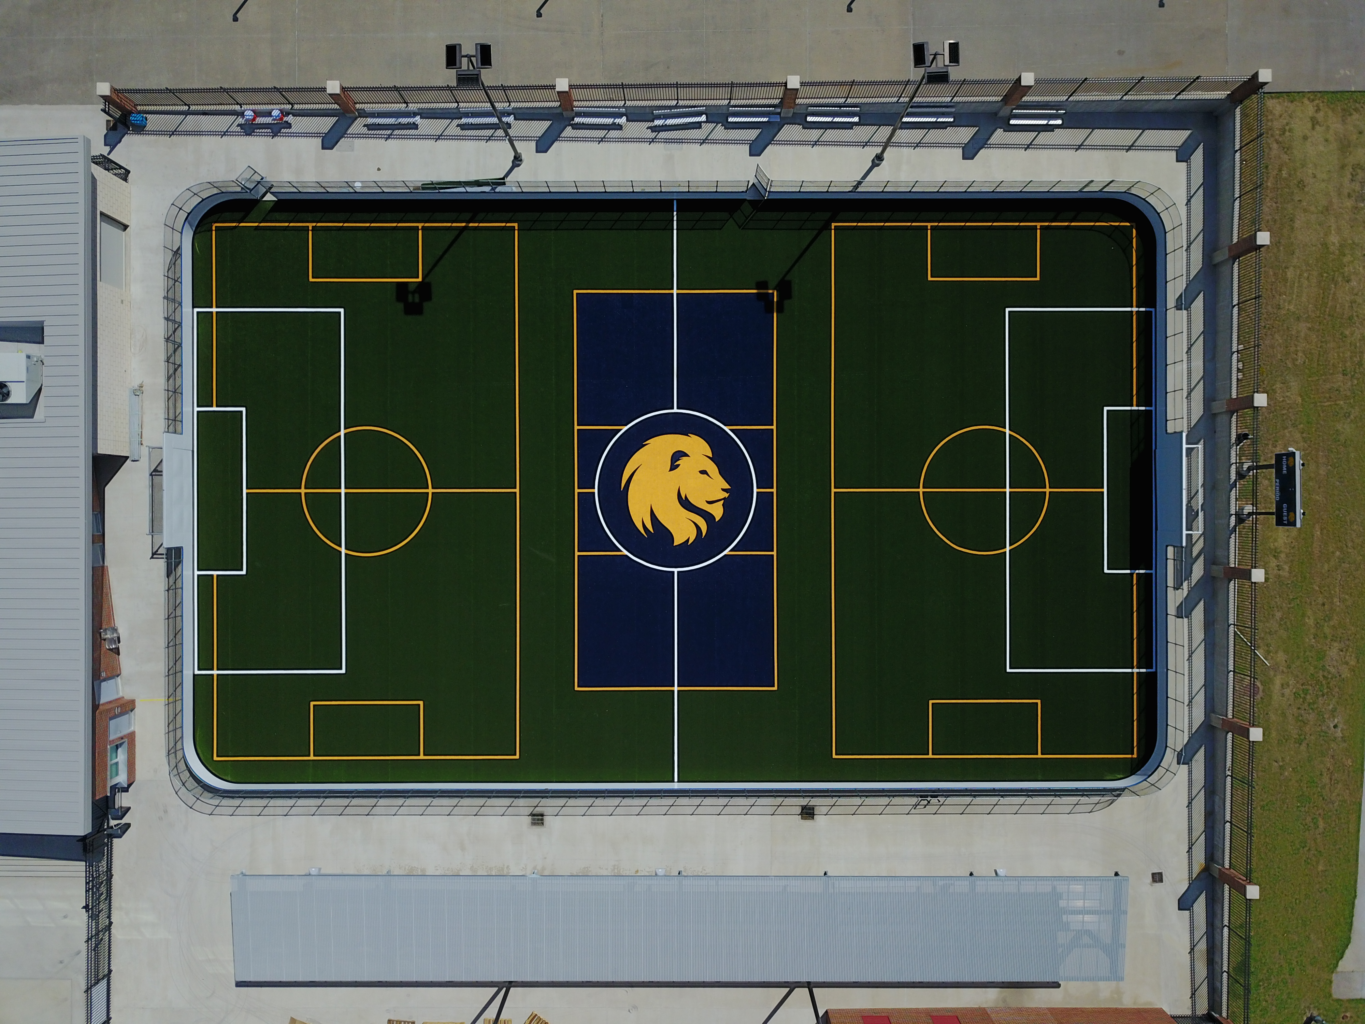 Skyview of the Morris Recreation Center's field.